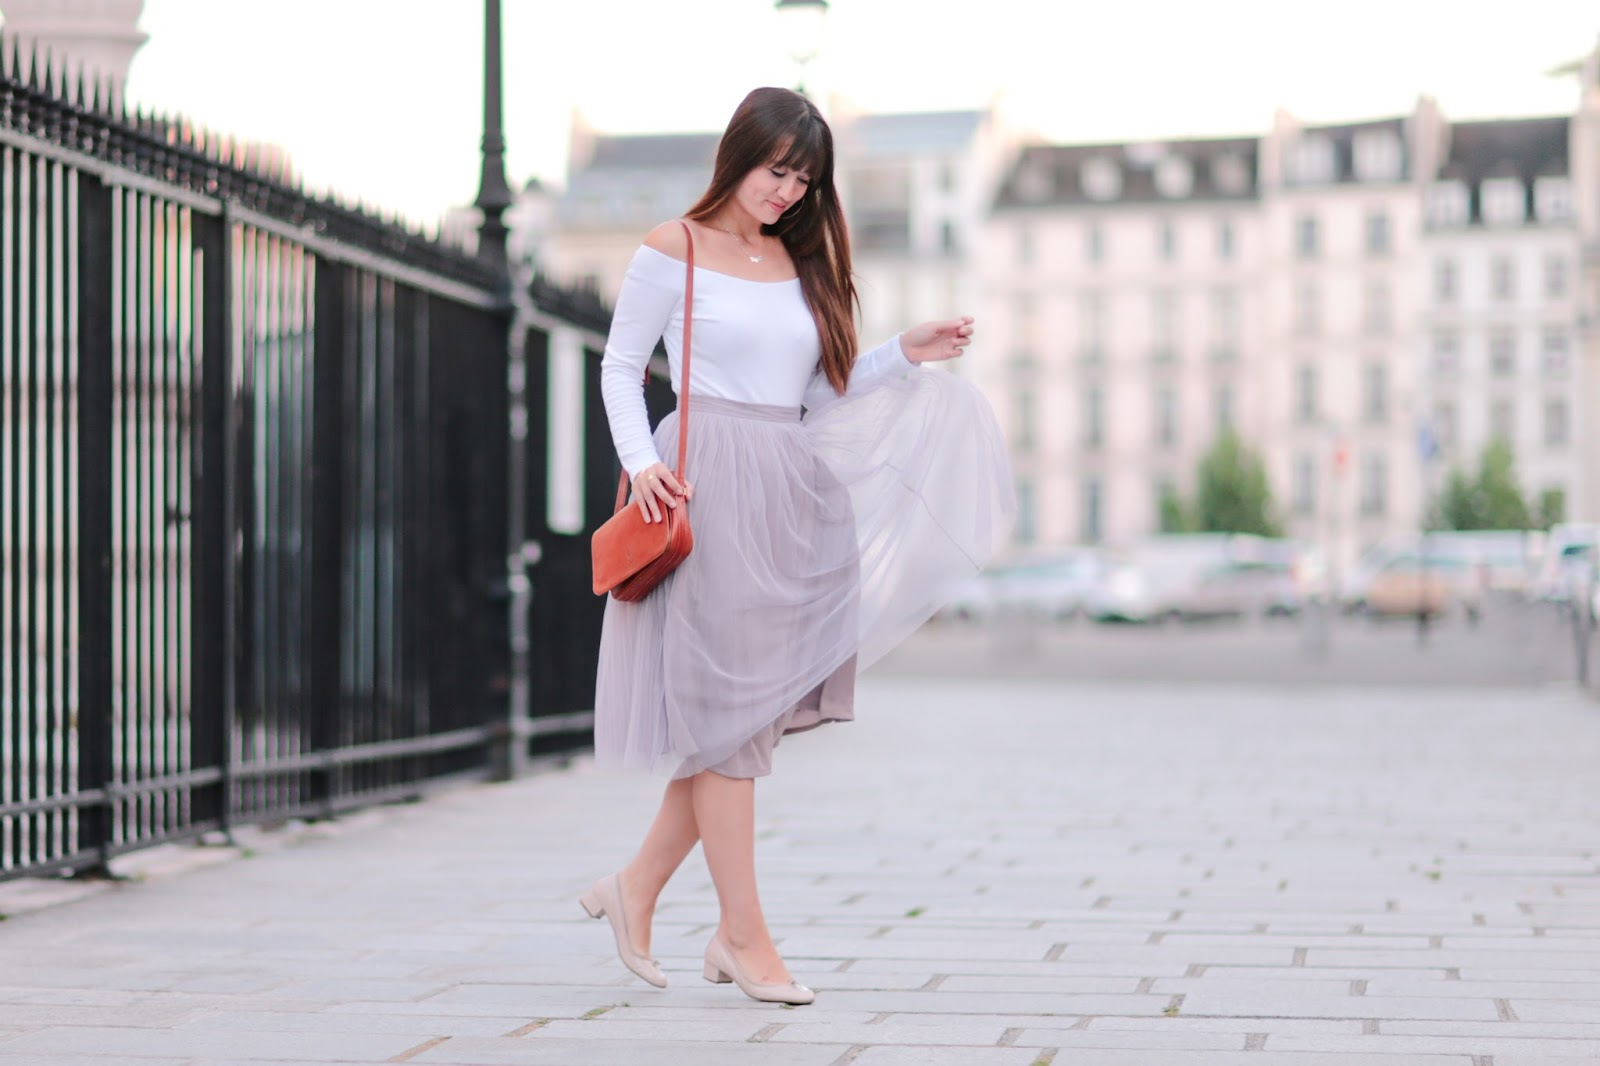 parisian fashion blogger, look, style, meetmeinparee, chic parisian style, off the shoulder top, asos , boohoo